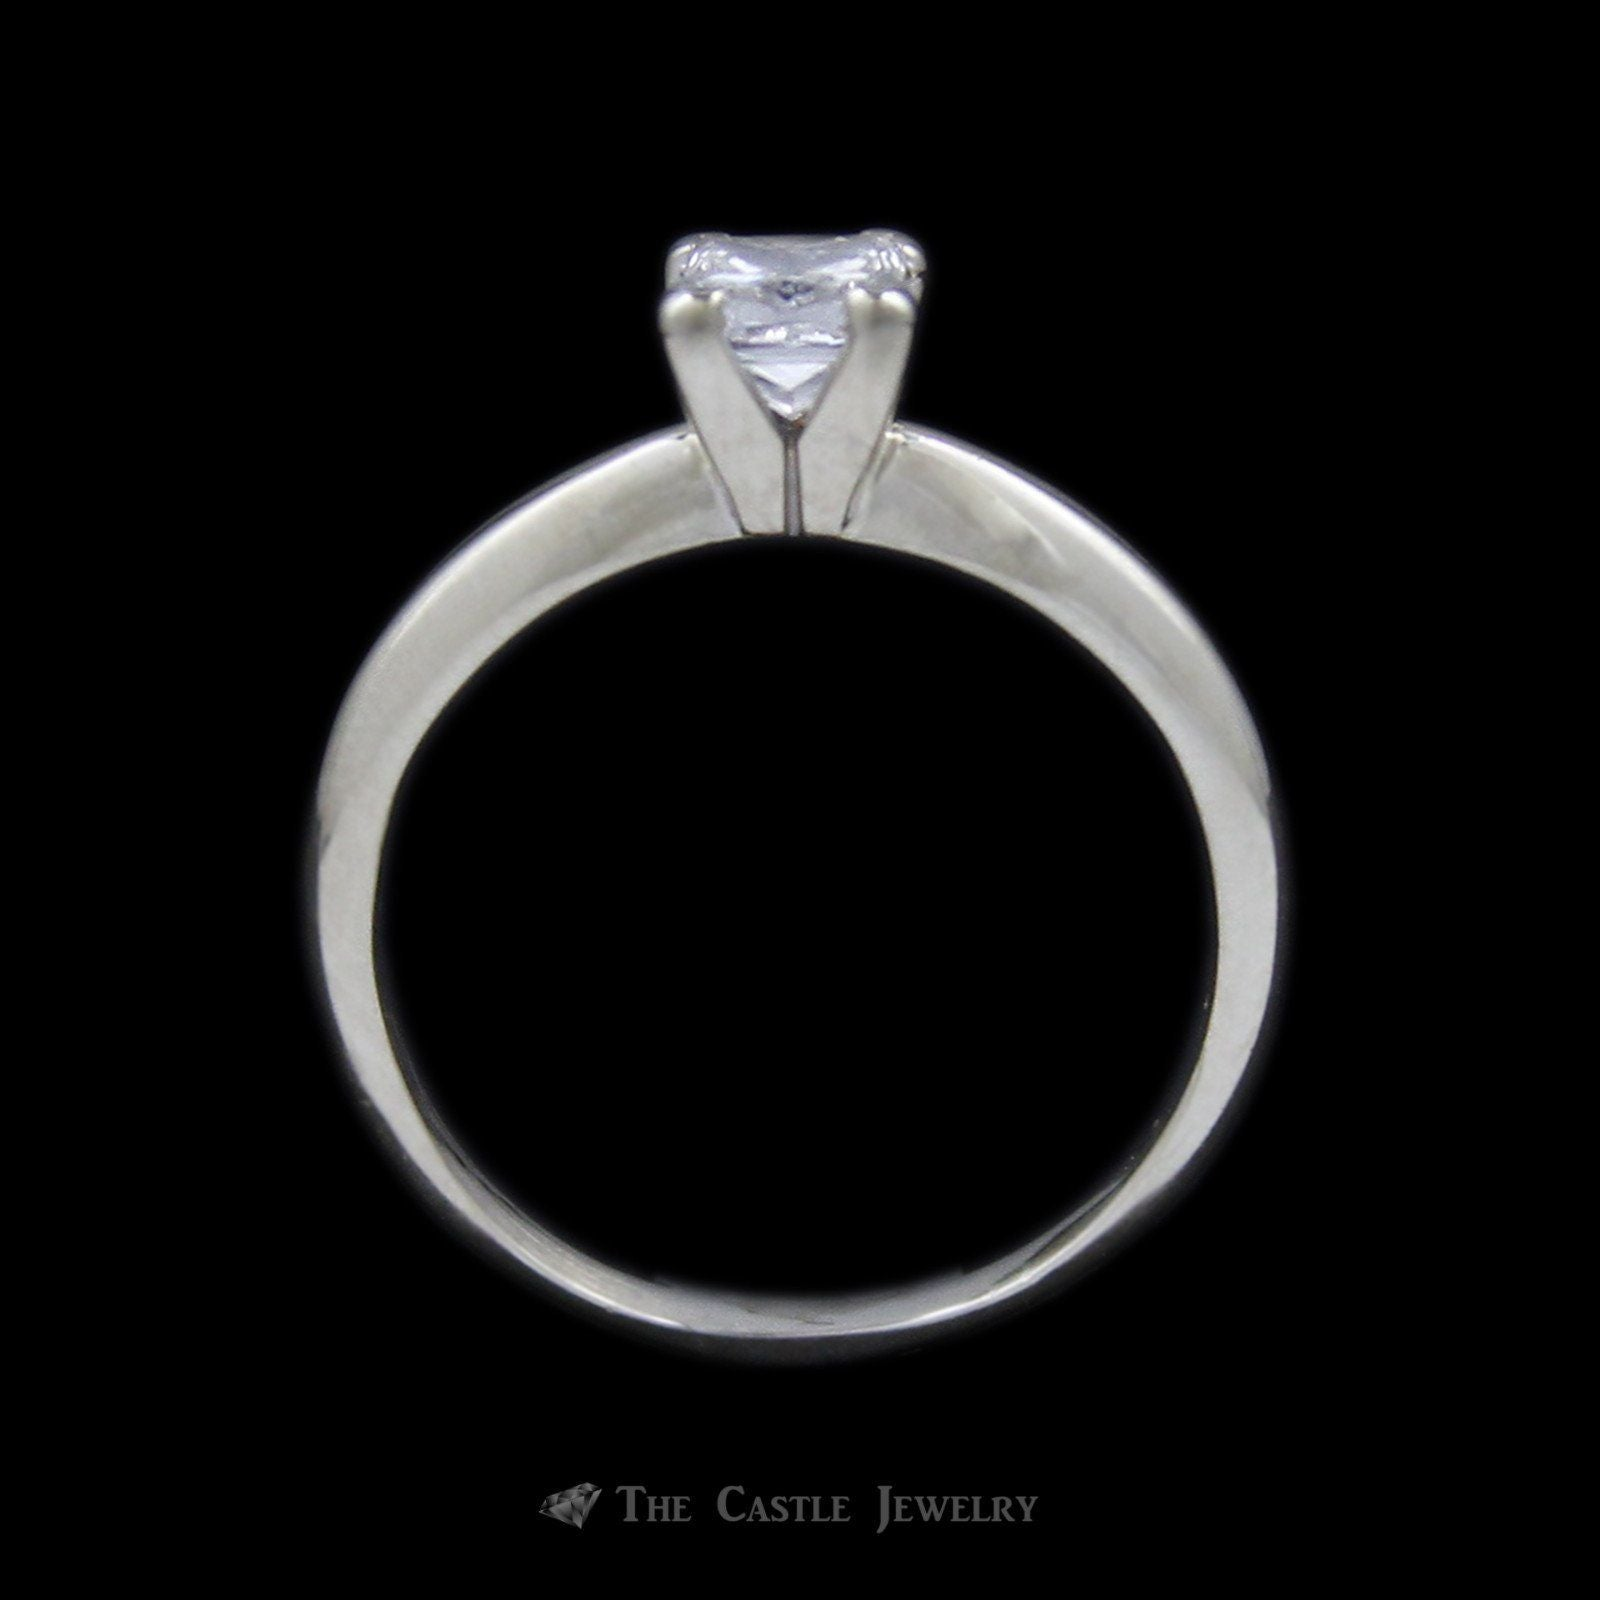 Princess Cut Diamond Solitaire .55 carat Engagement Ring in 14K White Gold-1